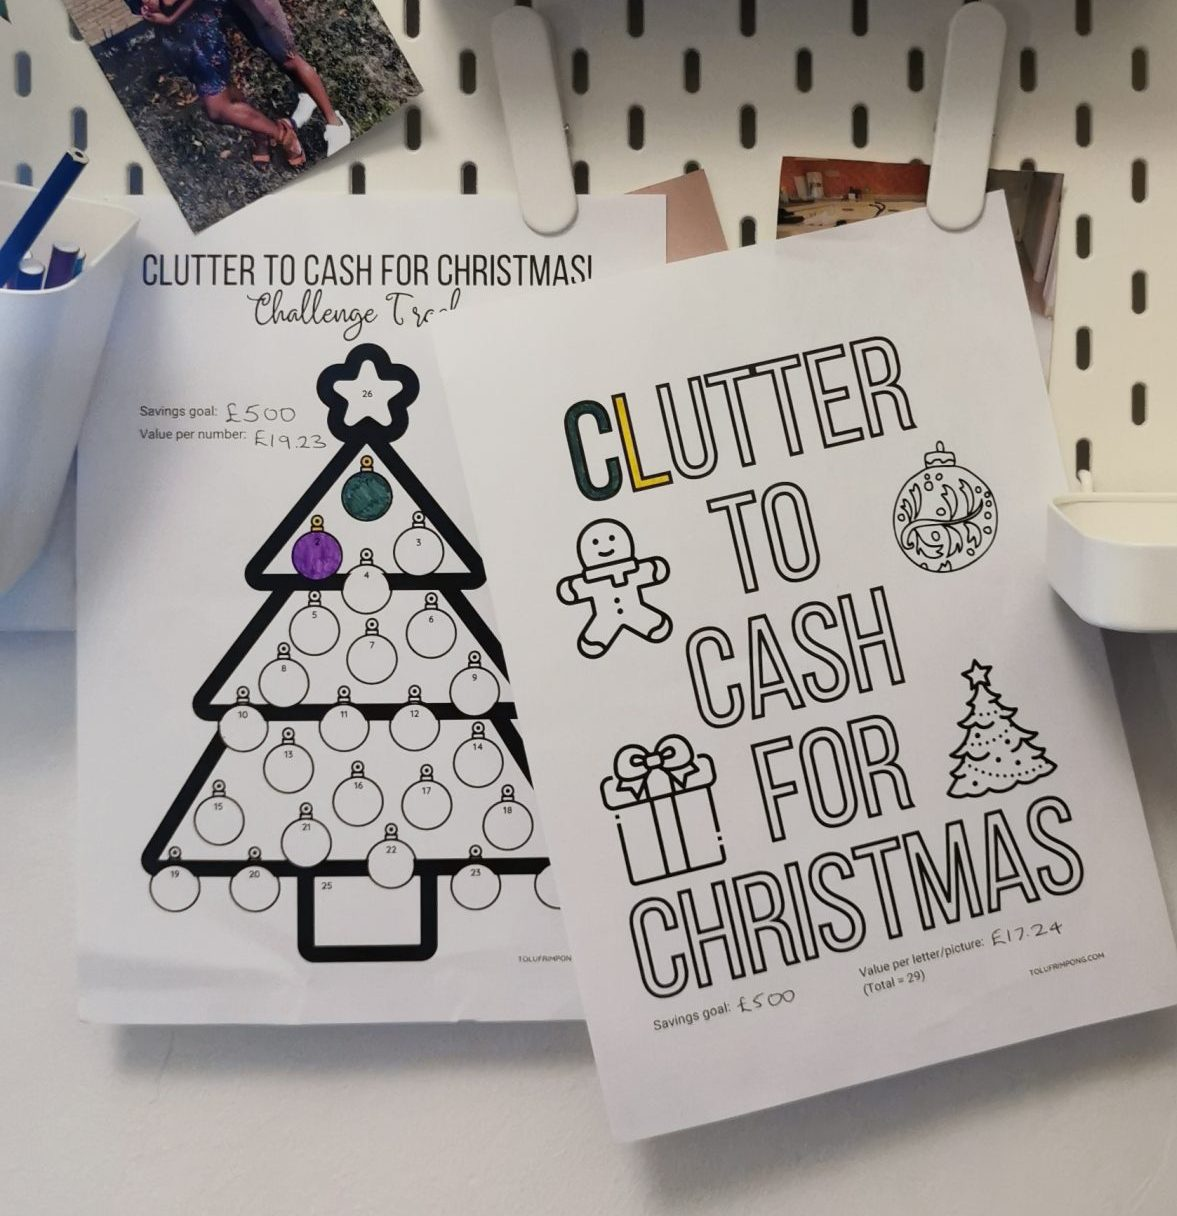 Clutter to cash for Christmas Challenge